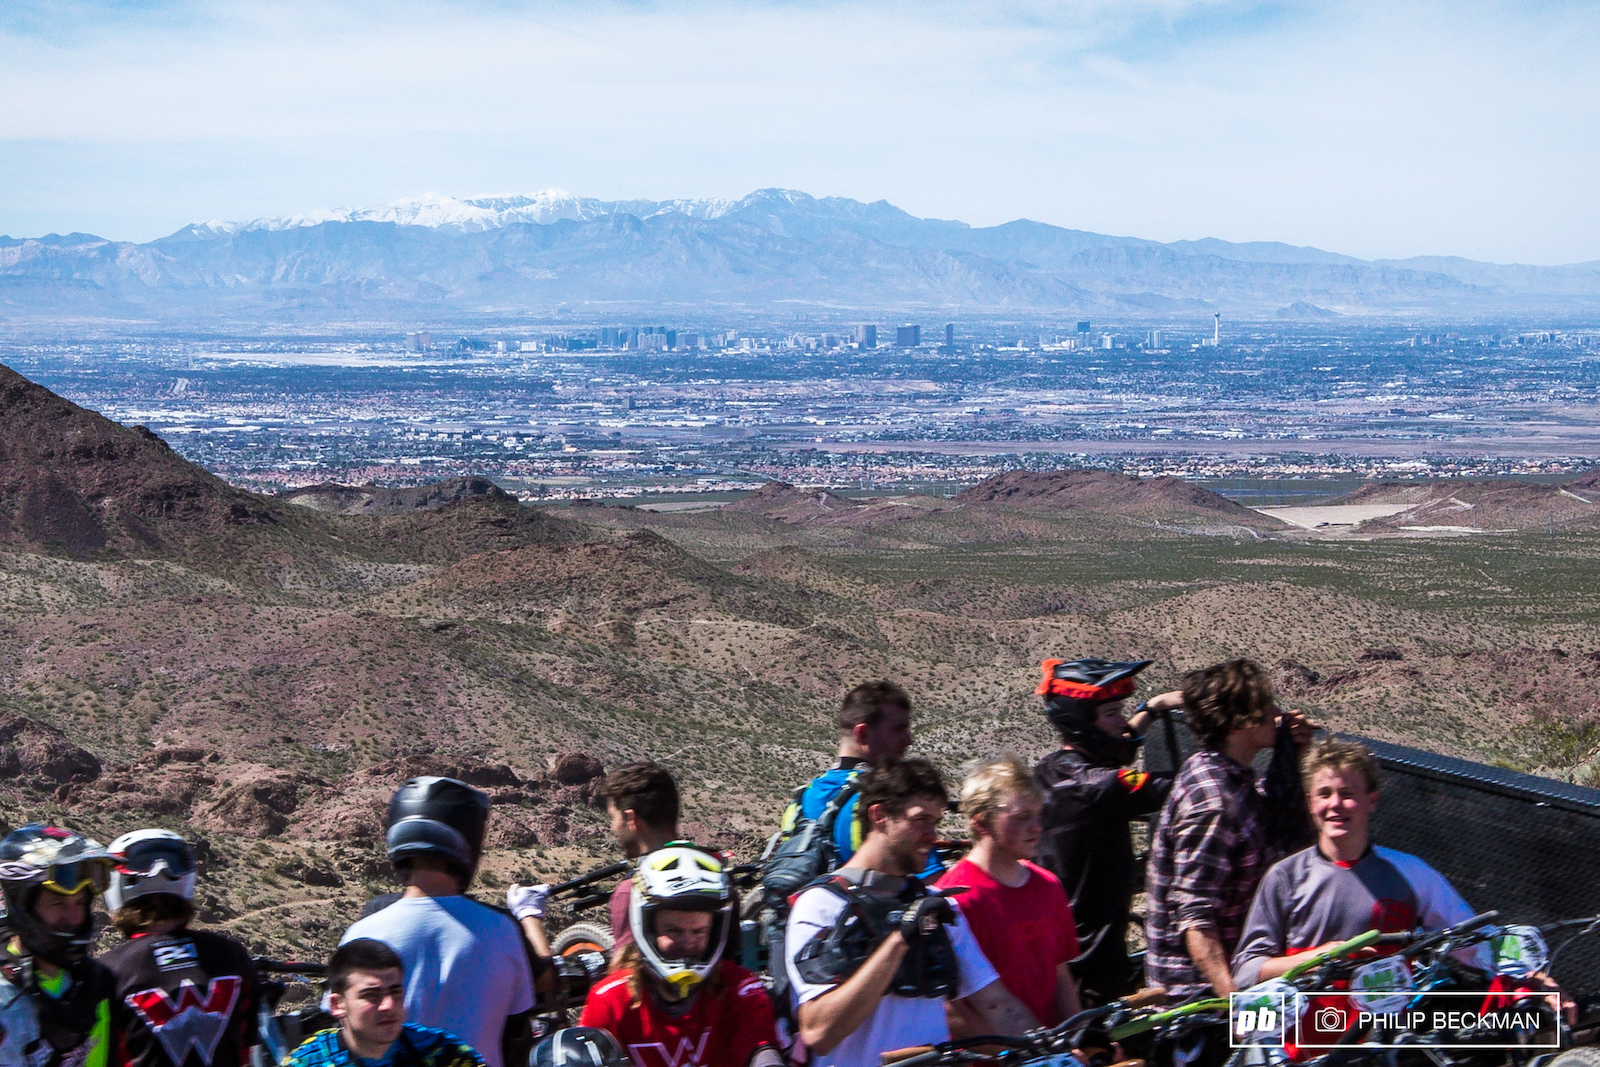 The shuttle run offered a sweeping view of the Las Vegas Strip and a snow-capped Mount Charleston.